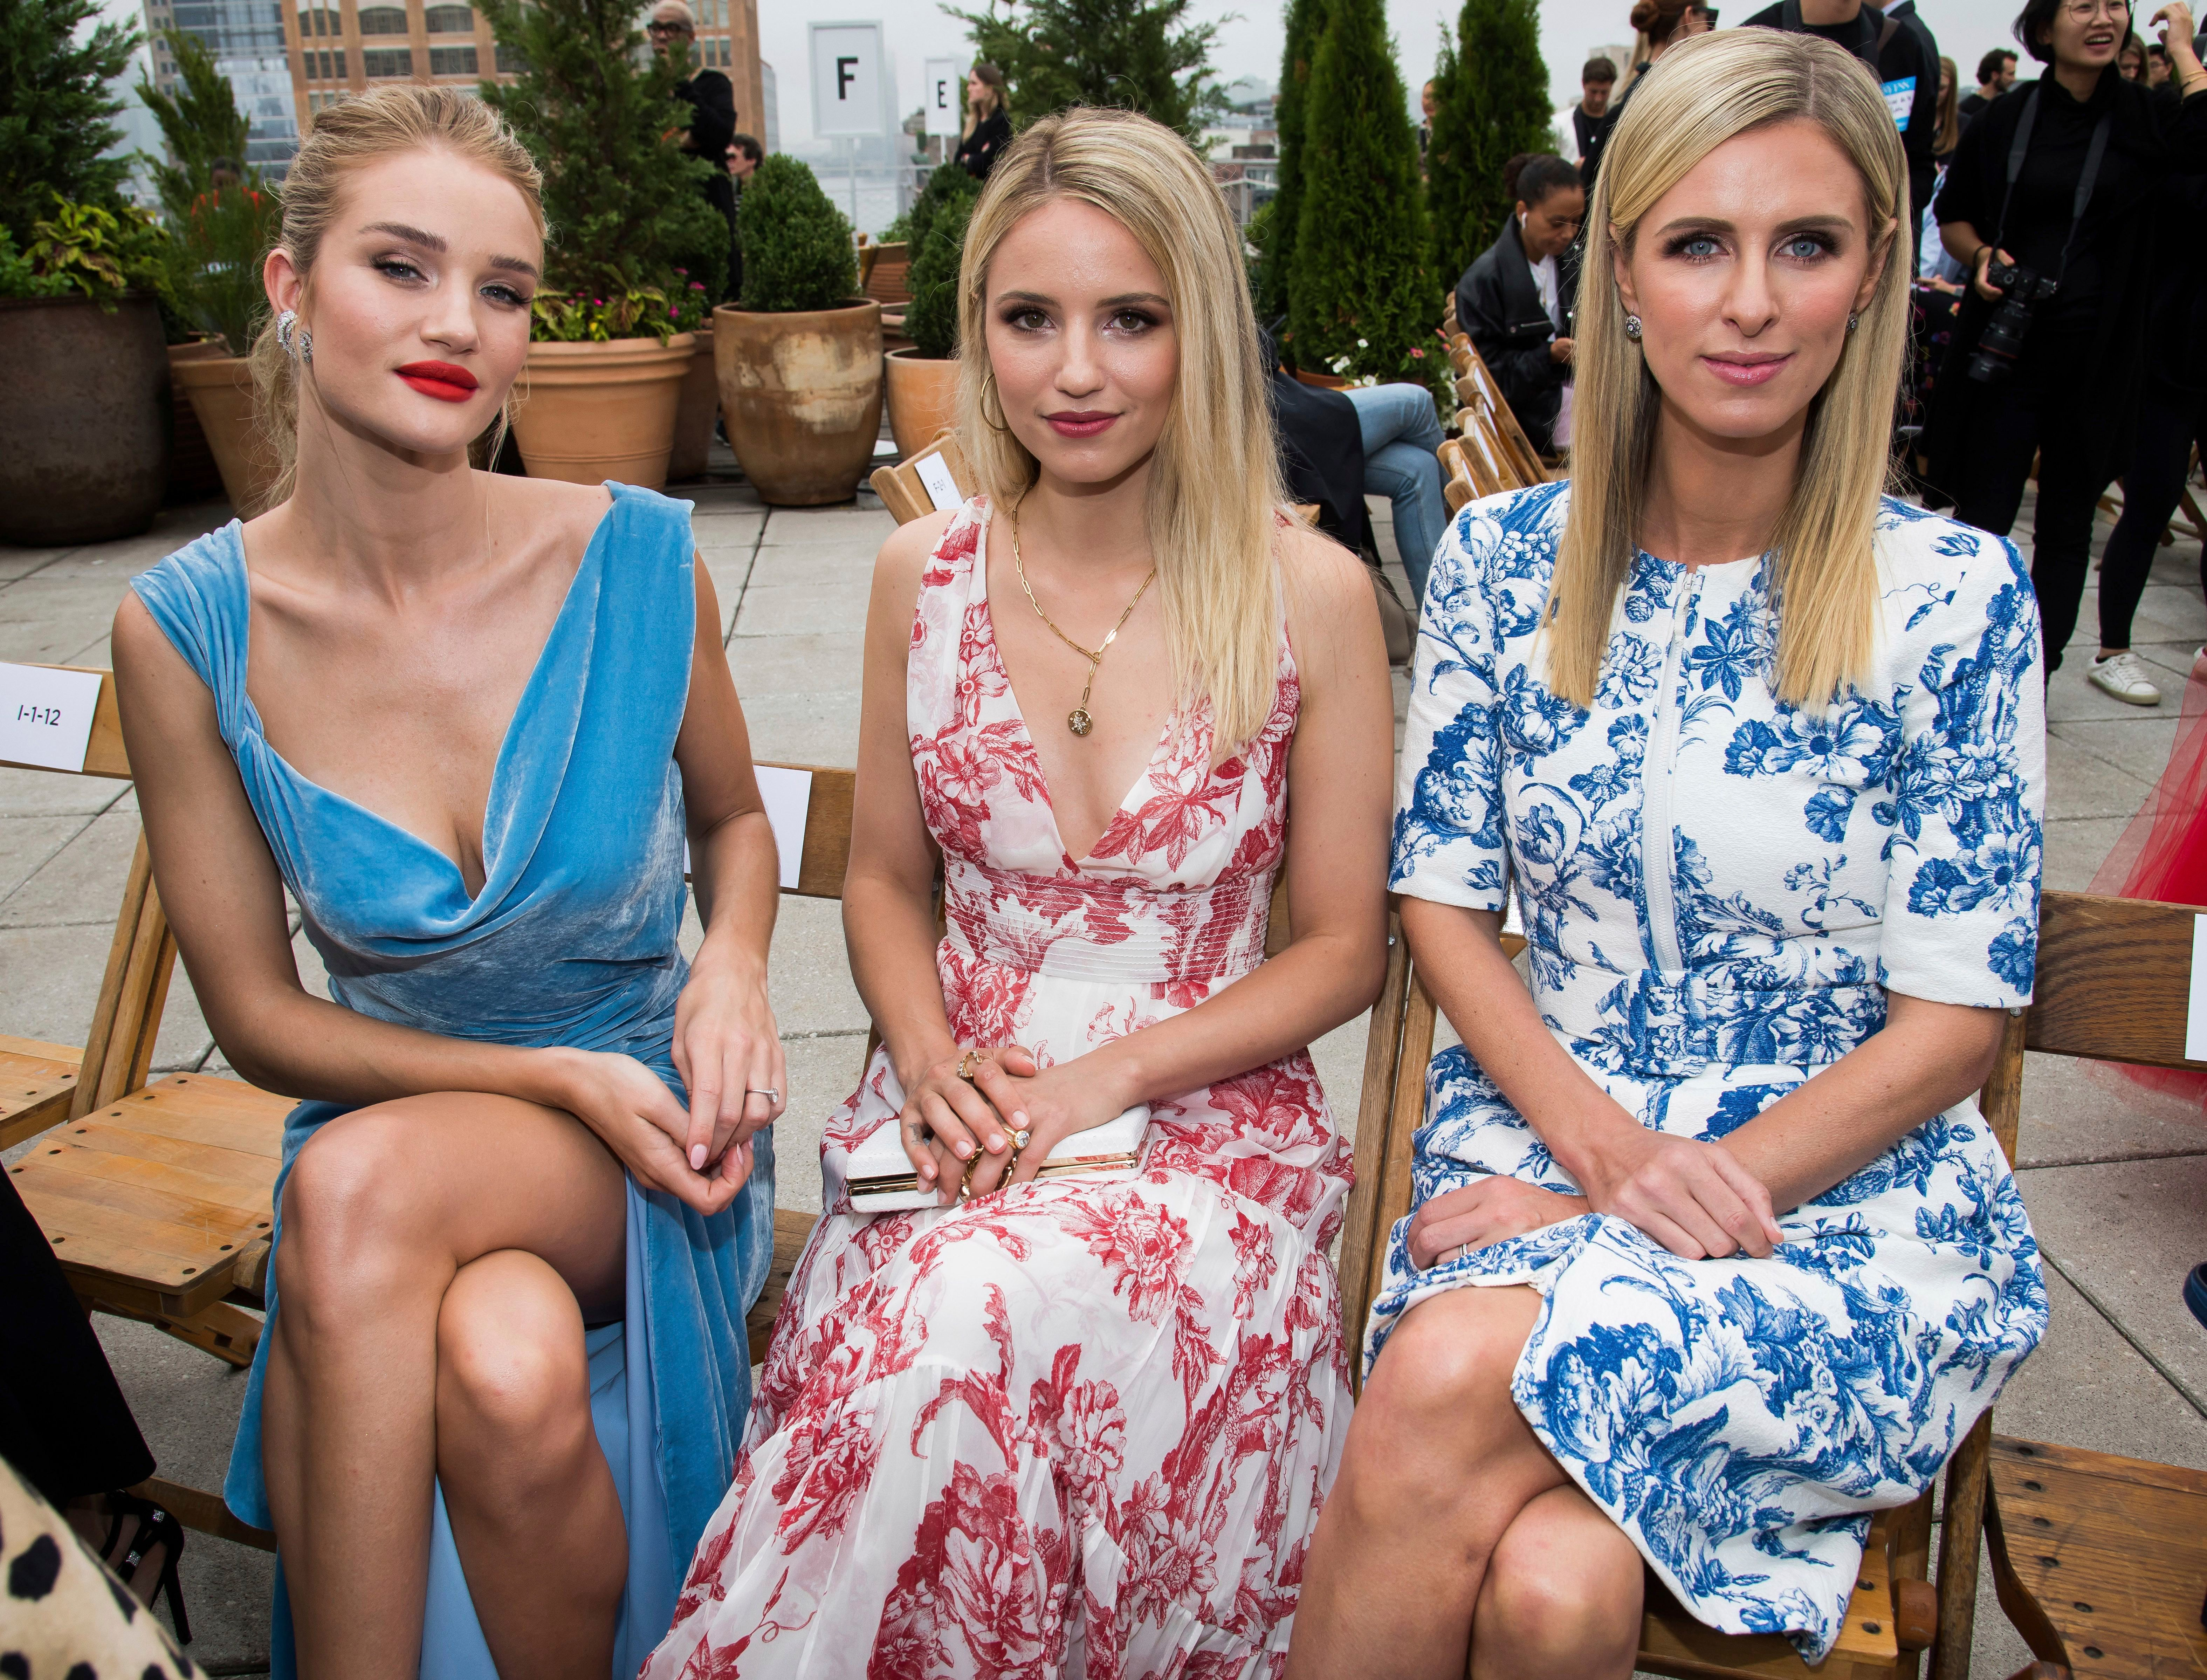 Rosie Huntington Whiteley, Dianna Agron and Nicky Hilton Rothschild attend the Oscar de la Renta show during Fashion Week on in New York City on Sept. 11, 2018.